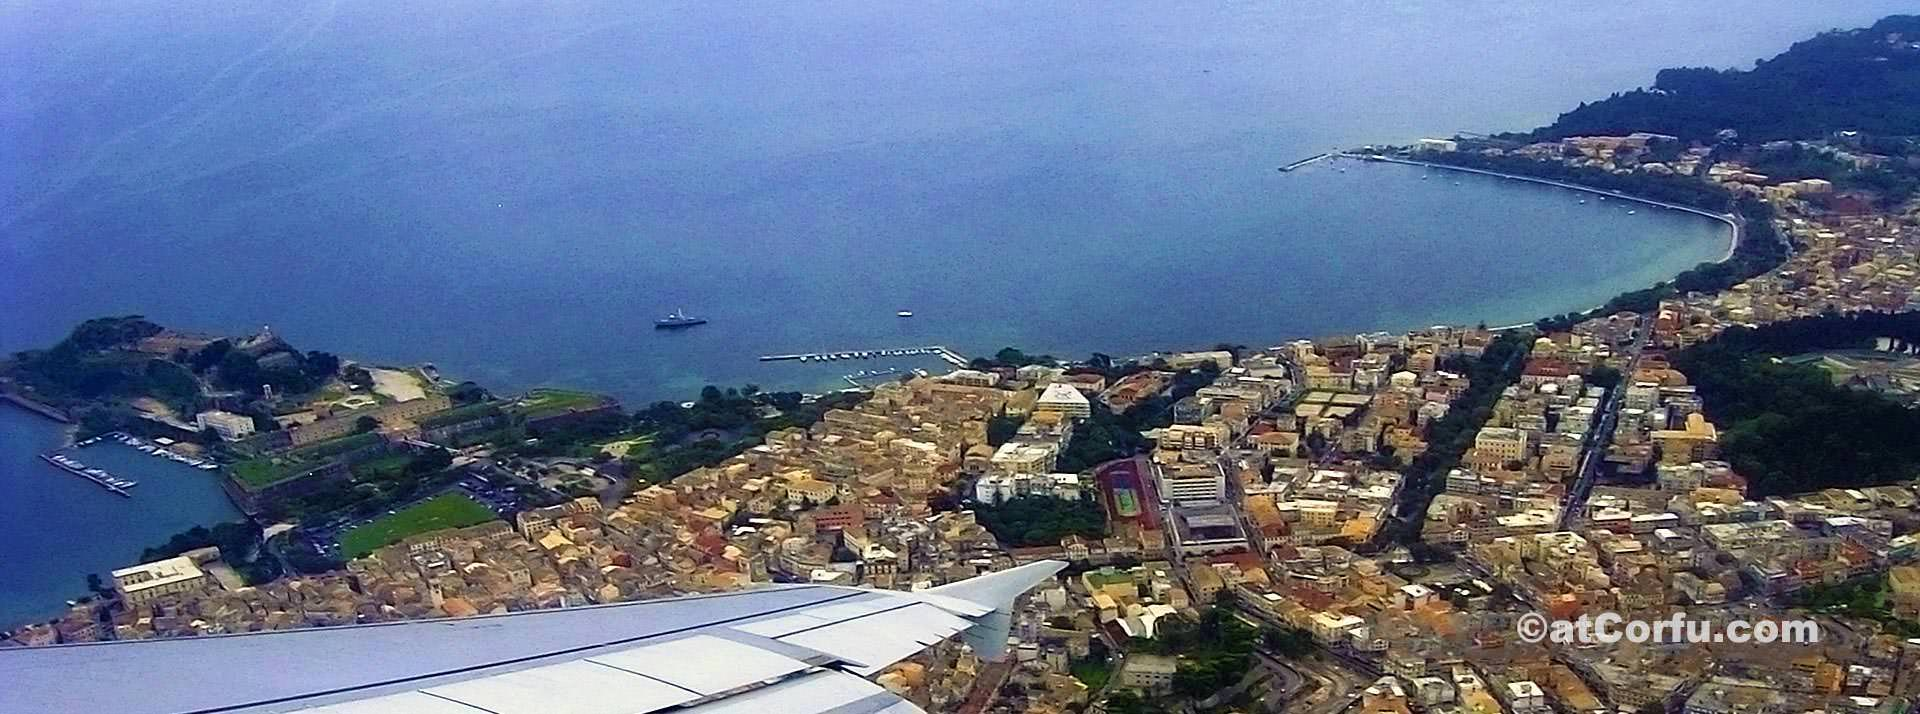 Corfu town from plane